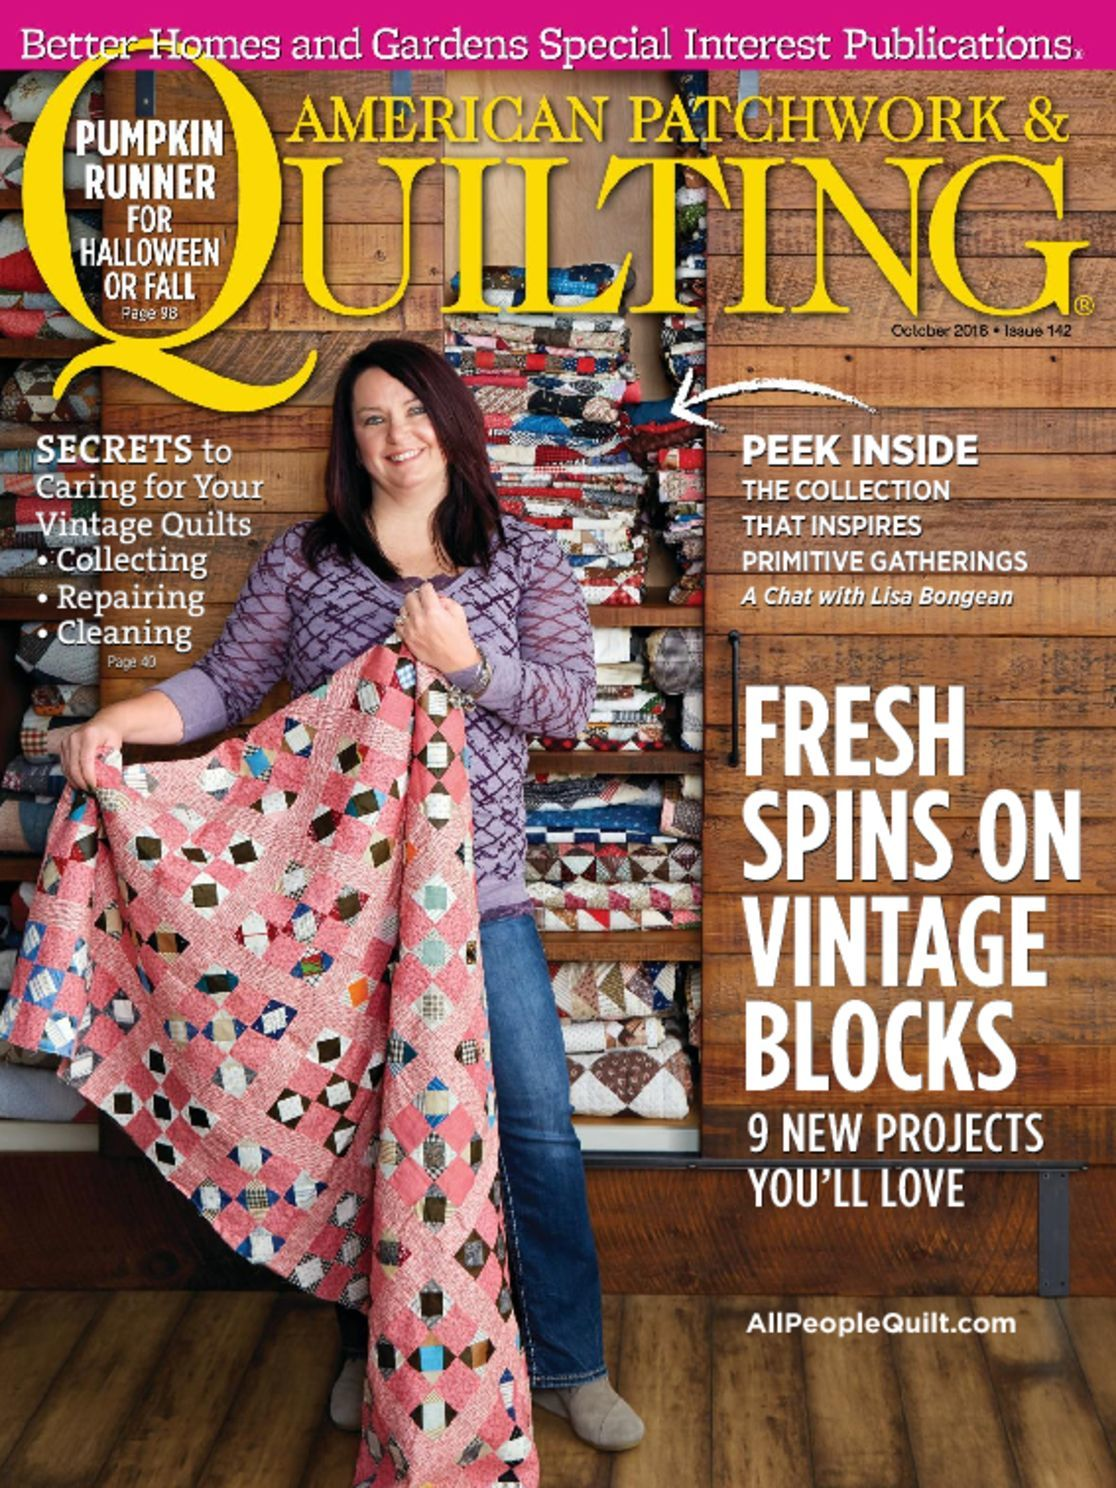 American Patchwork and Quilting - February 2016 - Issue 138